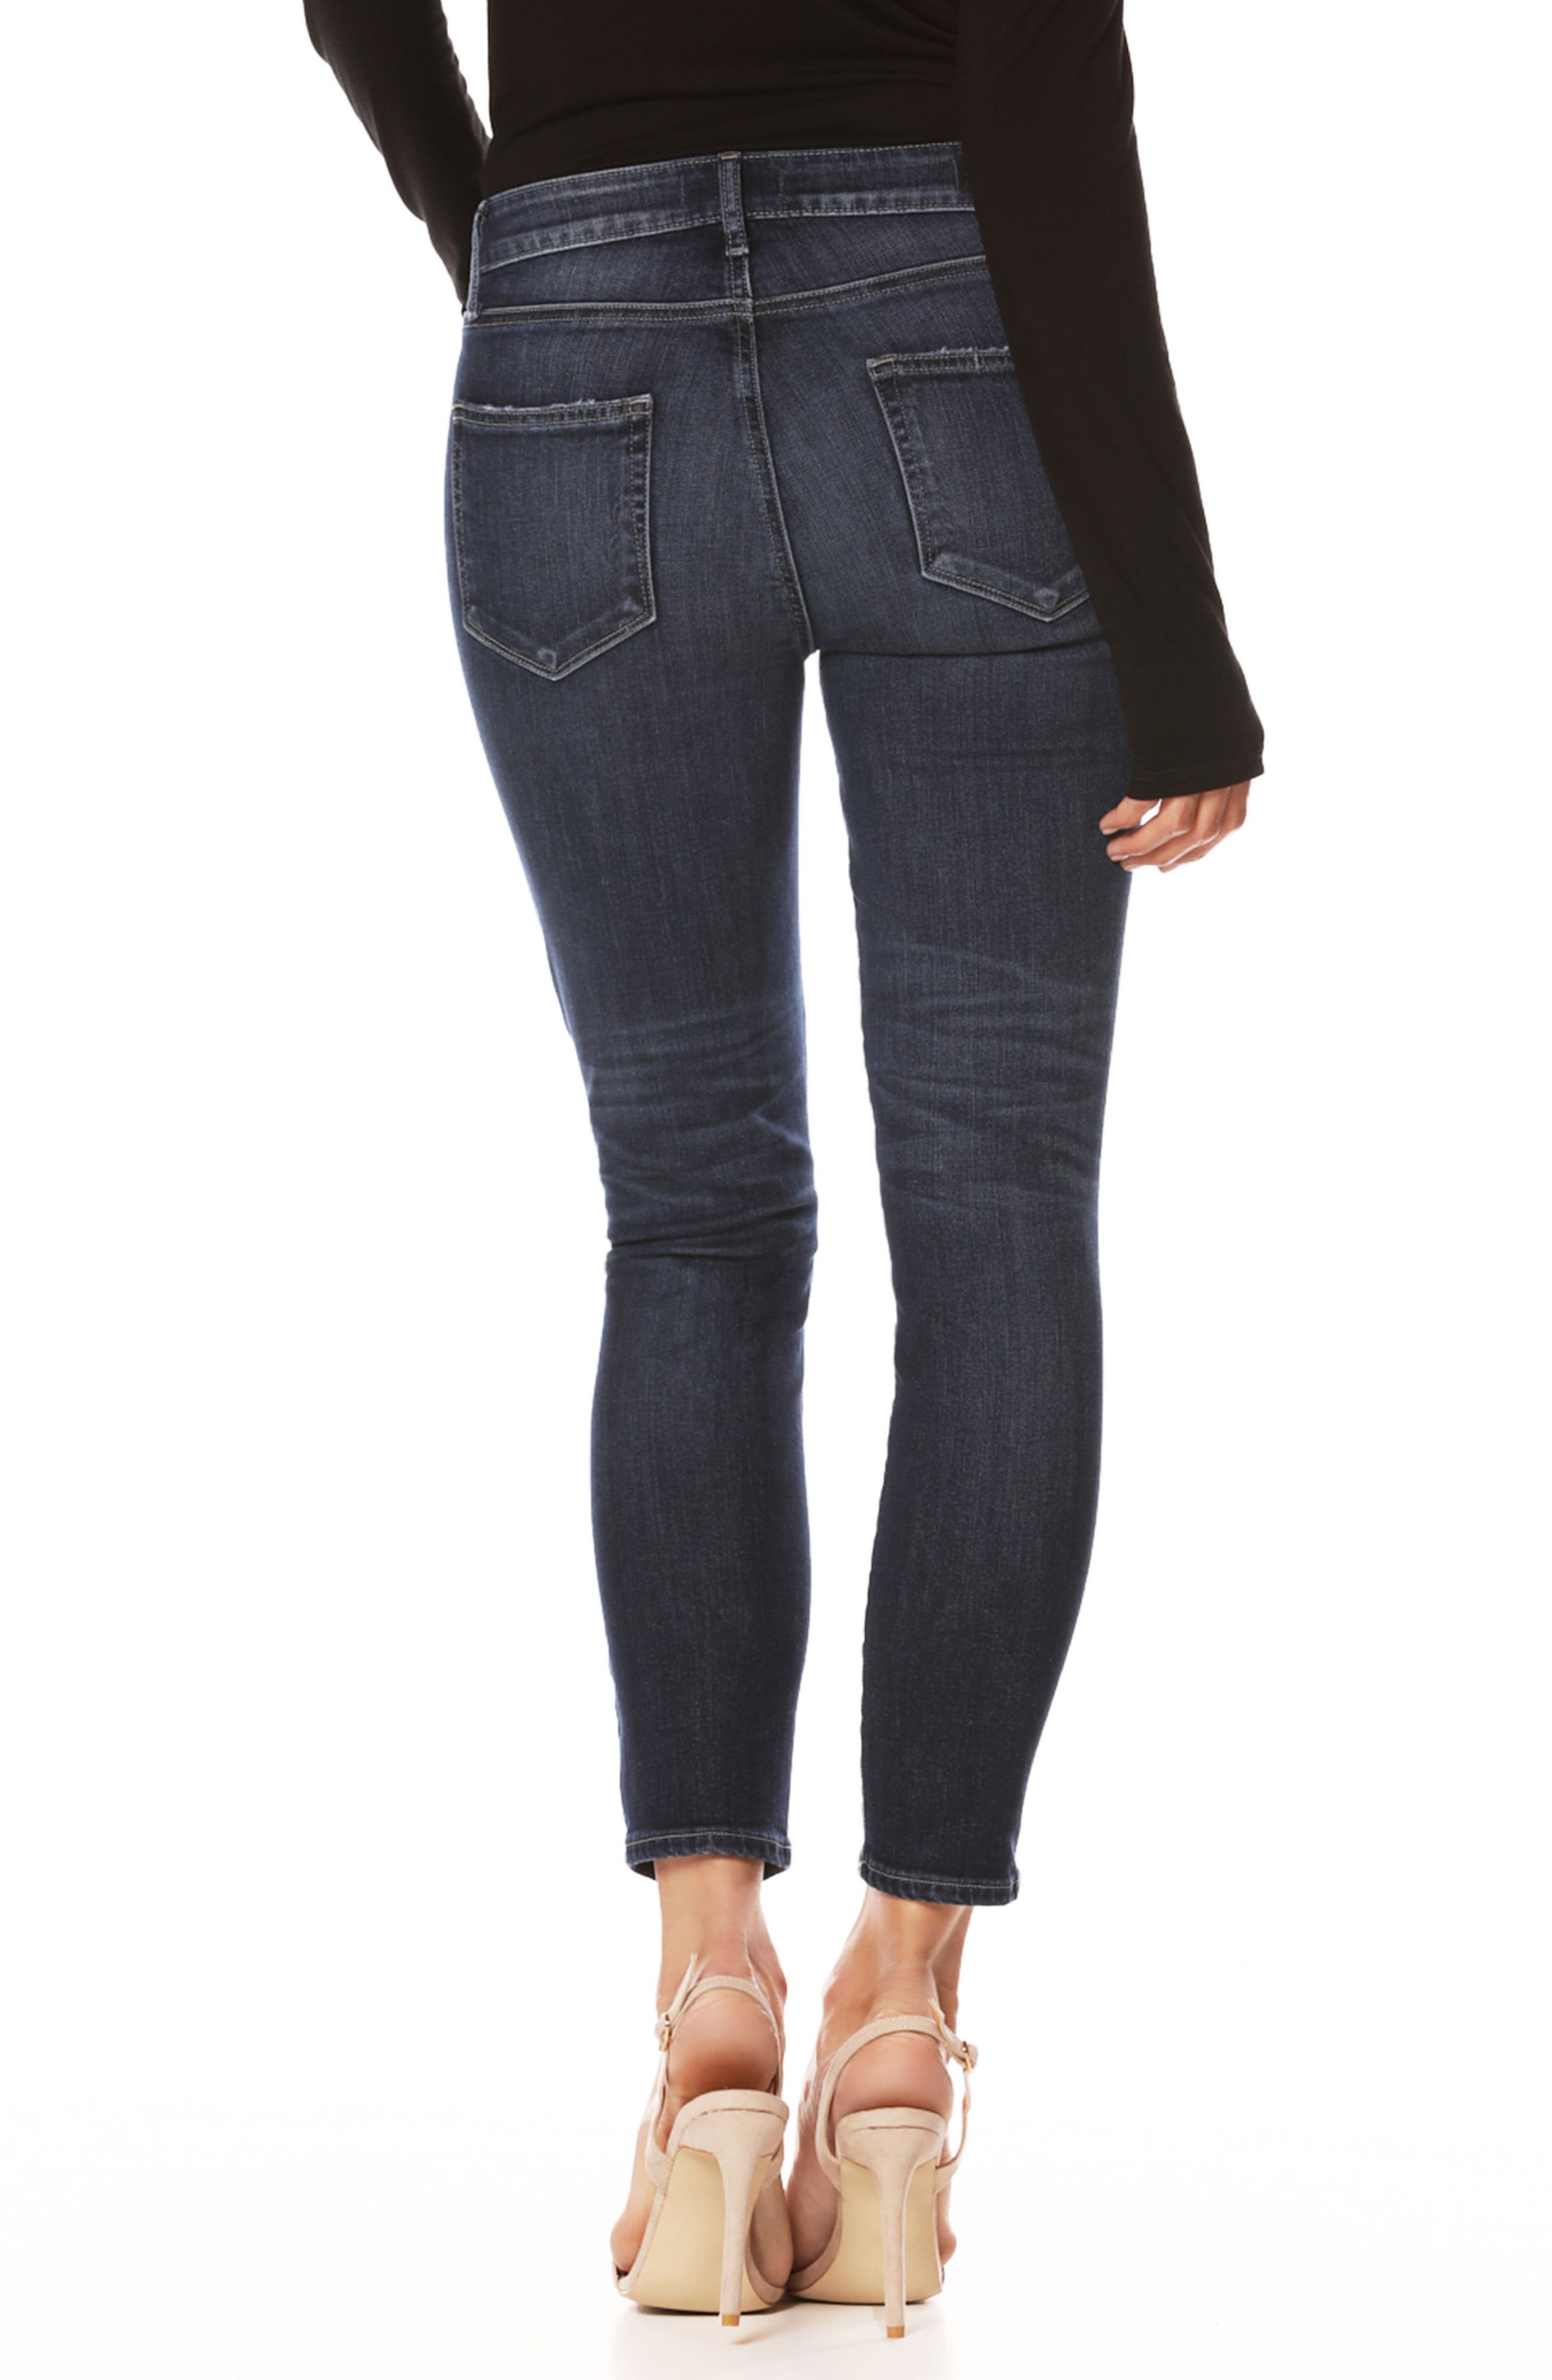 Transcend Vintage - Hoxton High Waist Crop Ultra Skinny Jeans,                             Alternate thumbnail 2, color,                             400